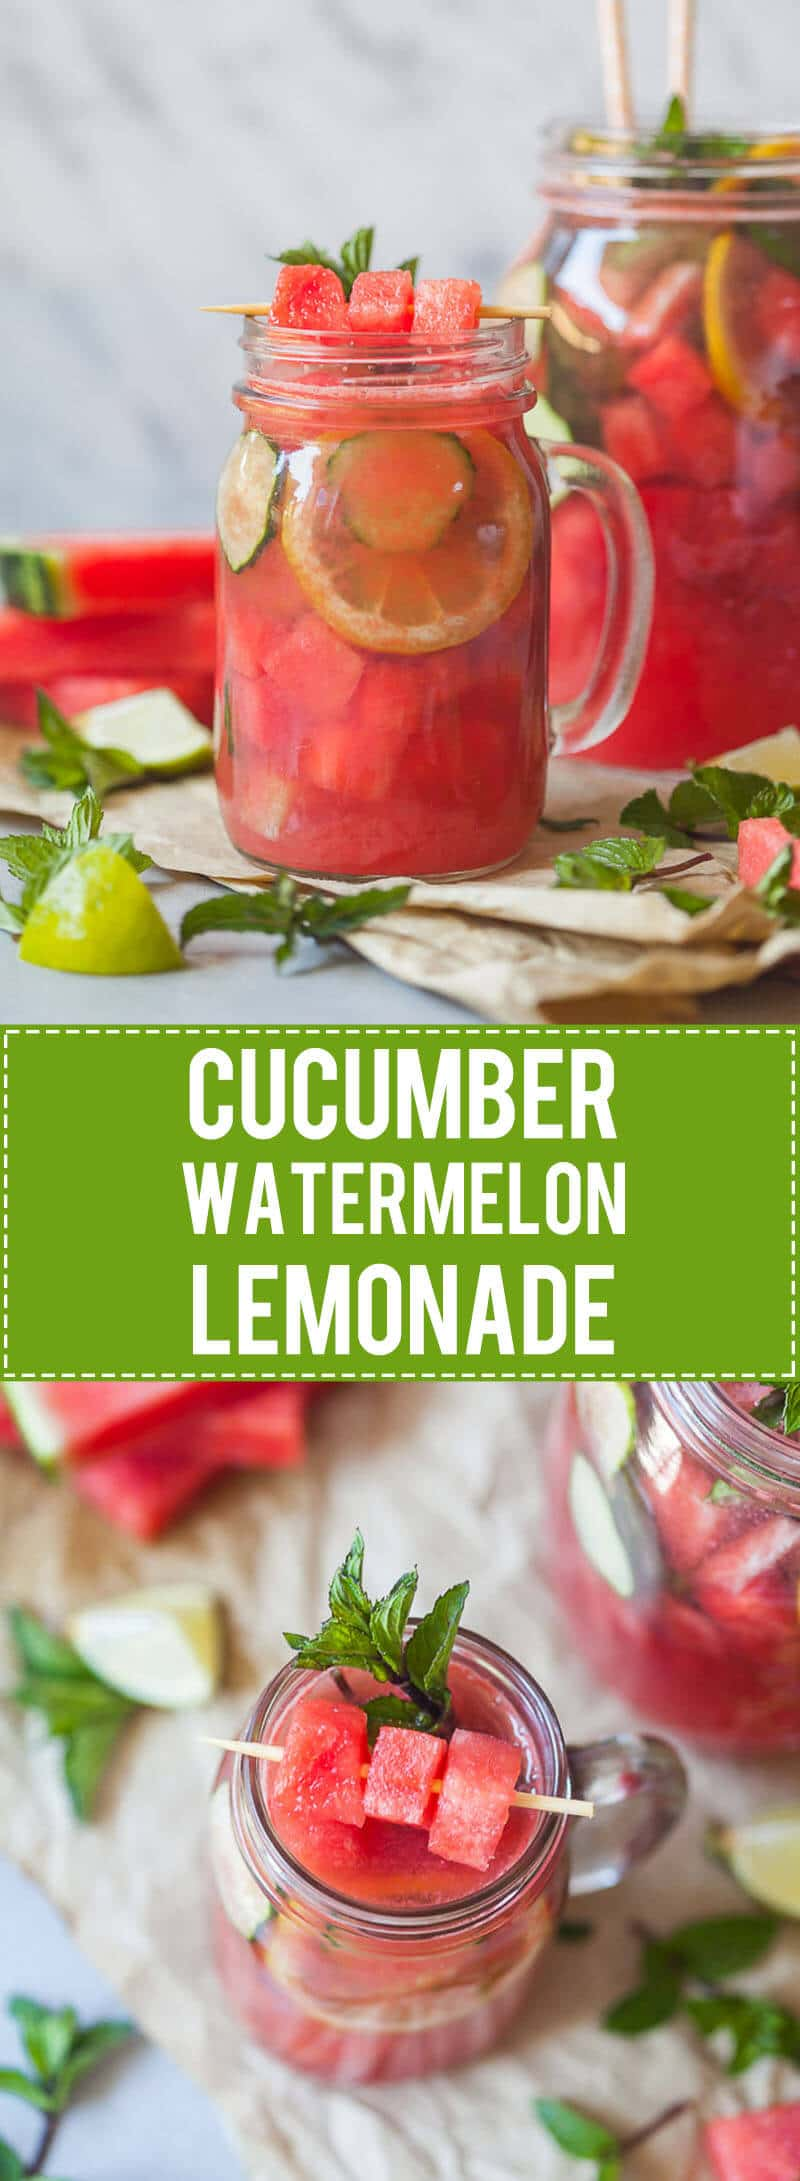 A healthy and refreshing Summer Cucumber Watermelon Lemonade with Mint and no added sugars! | www.vibrantplate.com